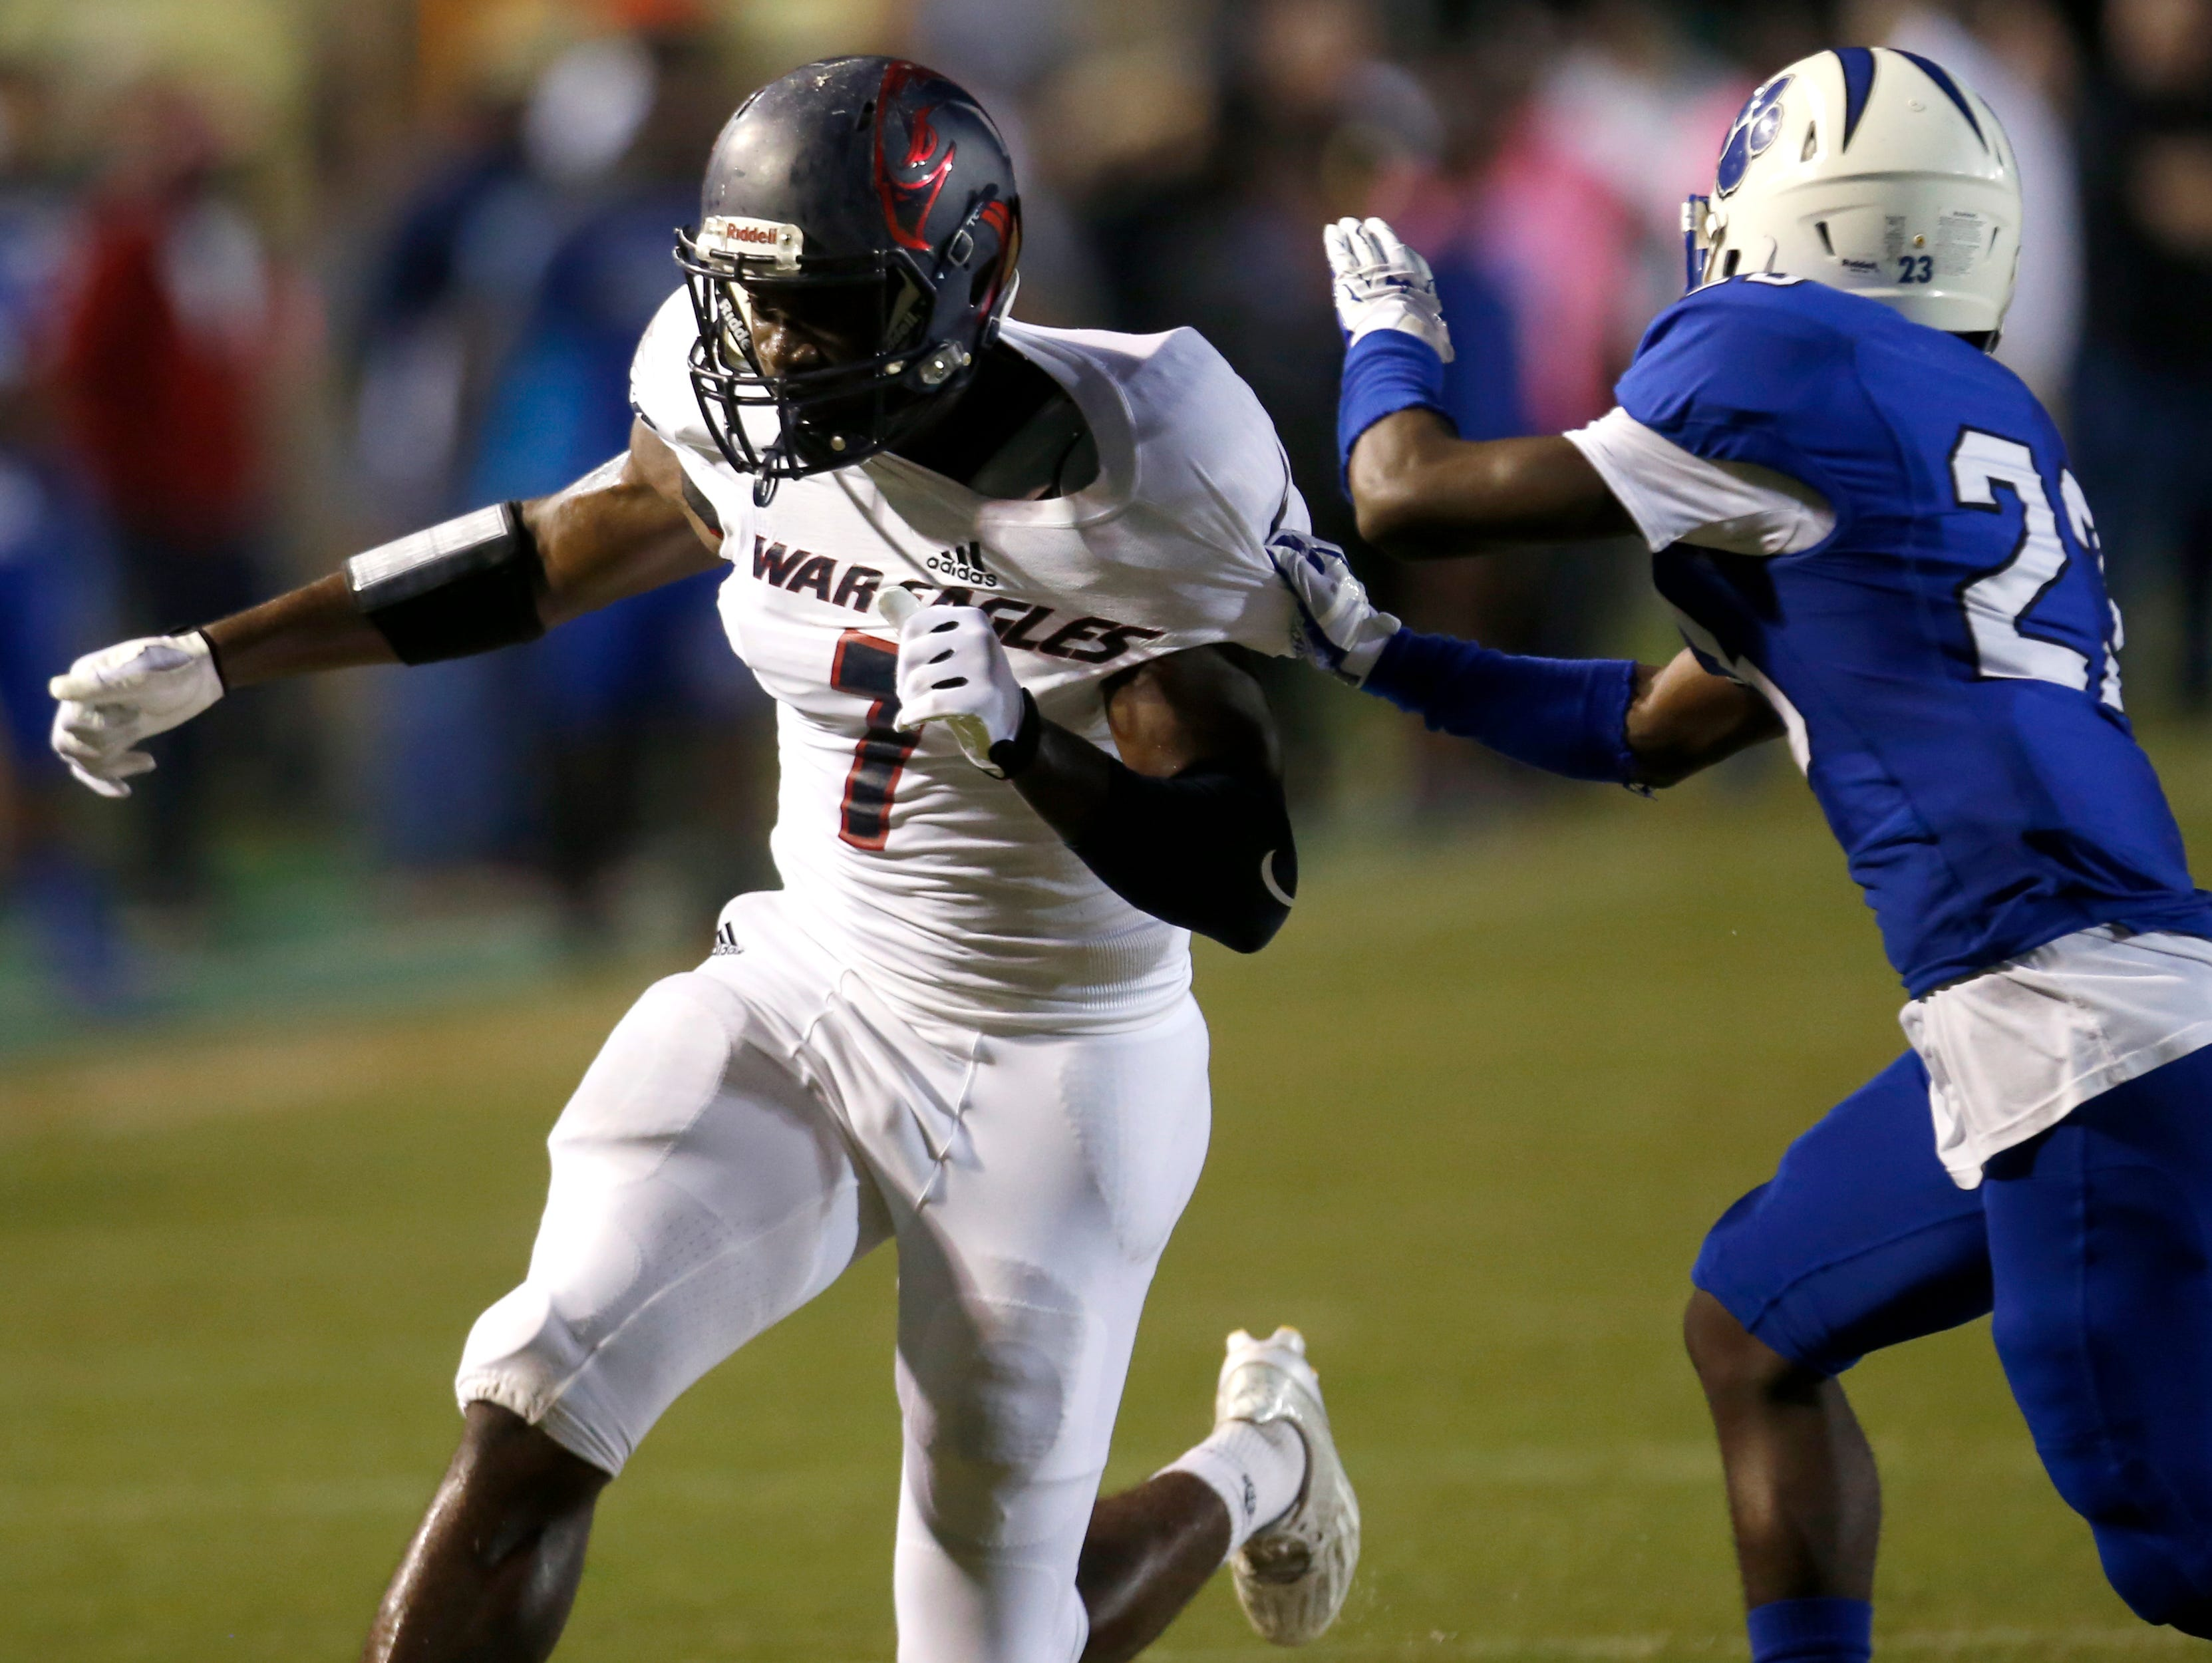 Wakulla's Keith Gavin is held by a Godby defender during their game at Cox Stadium on Thursday.